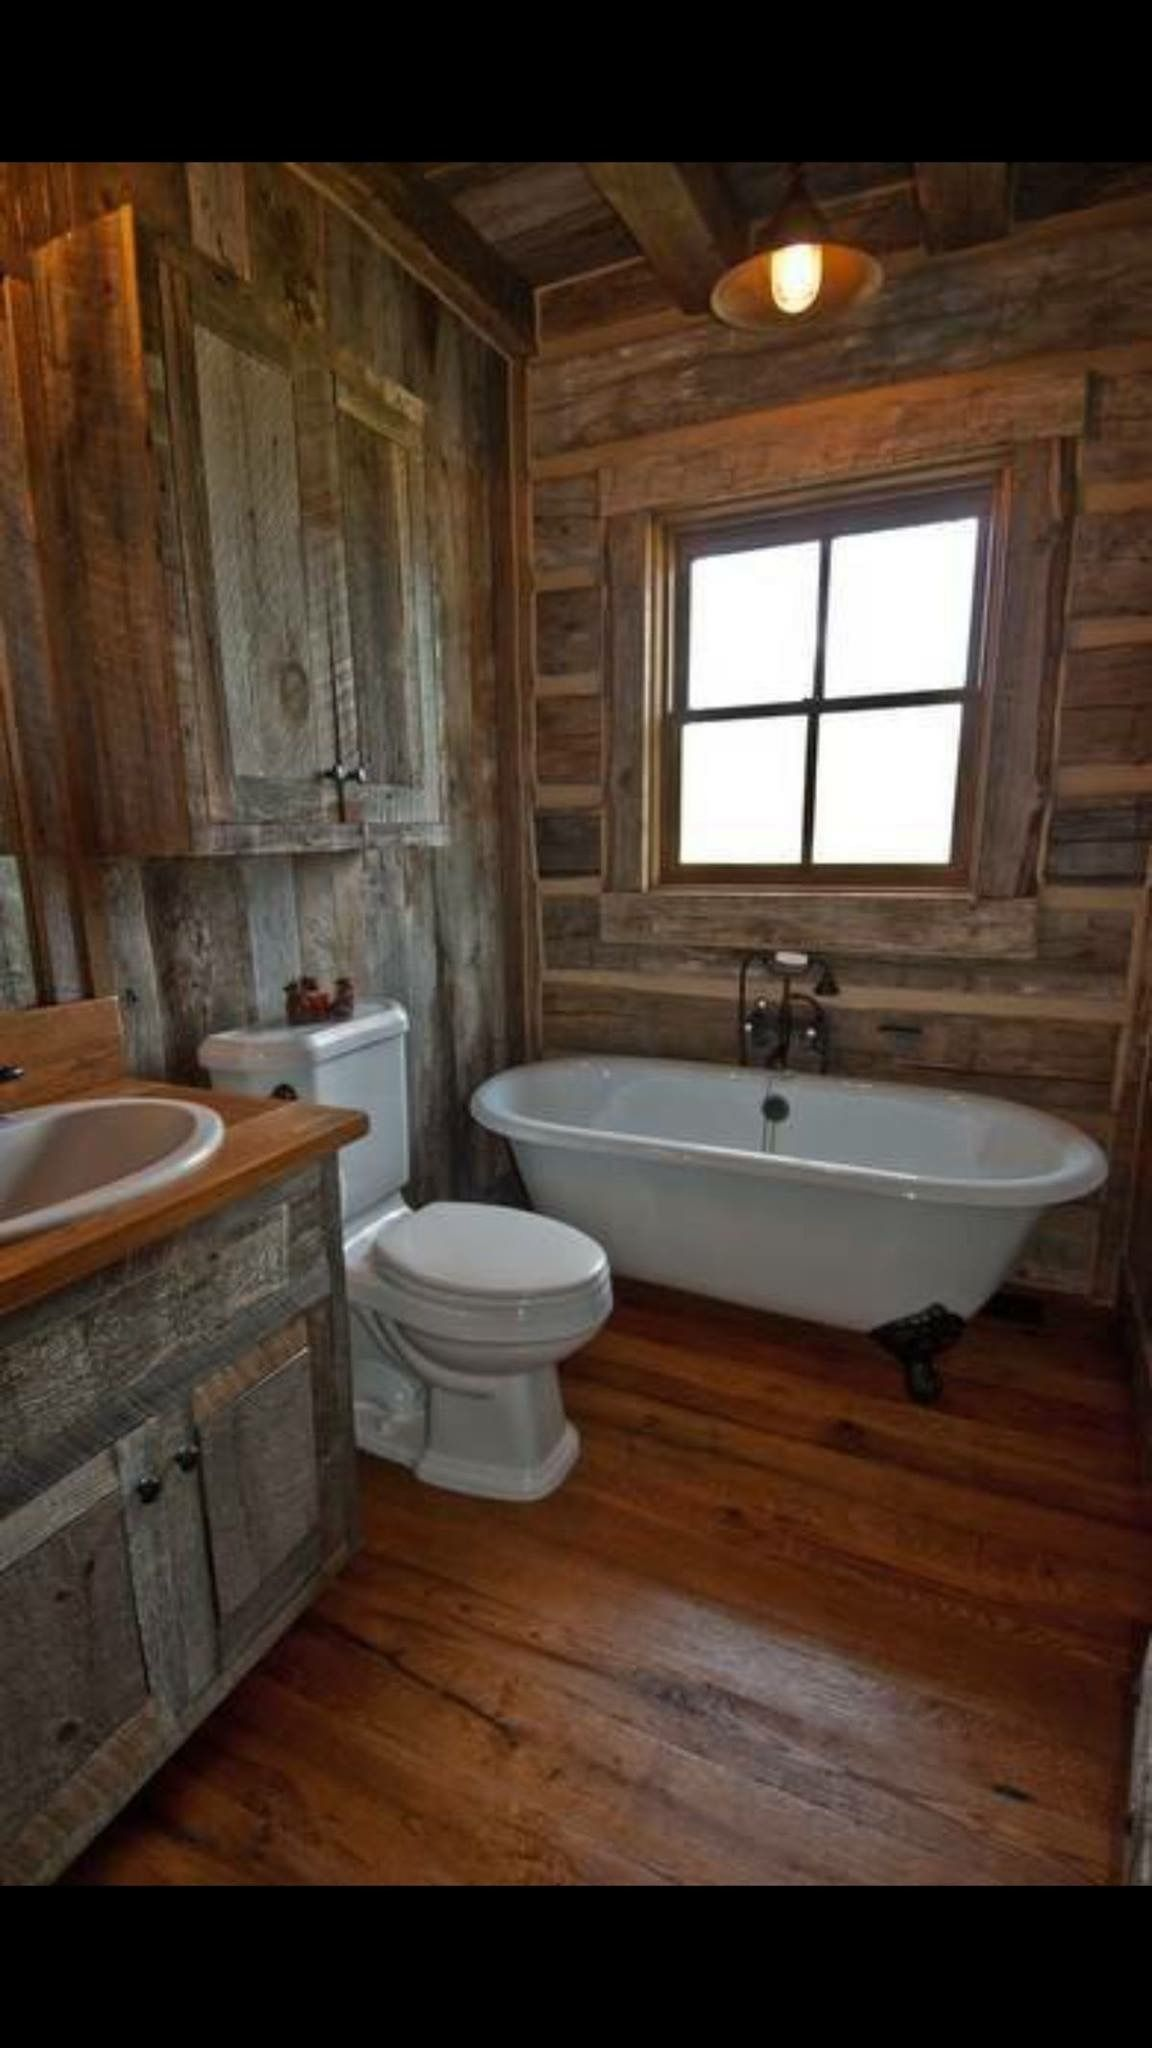 rustic bath cabin sweet cabin pinterest badezimmer haus und badezimmer rustikal. Black Bedroom Furniture Sets. Home Design Ideas